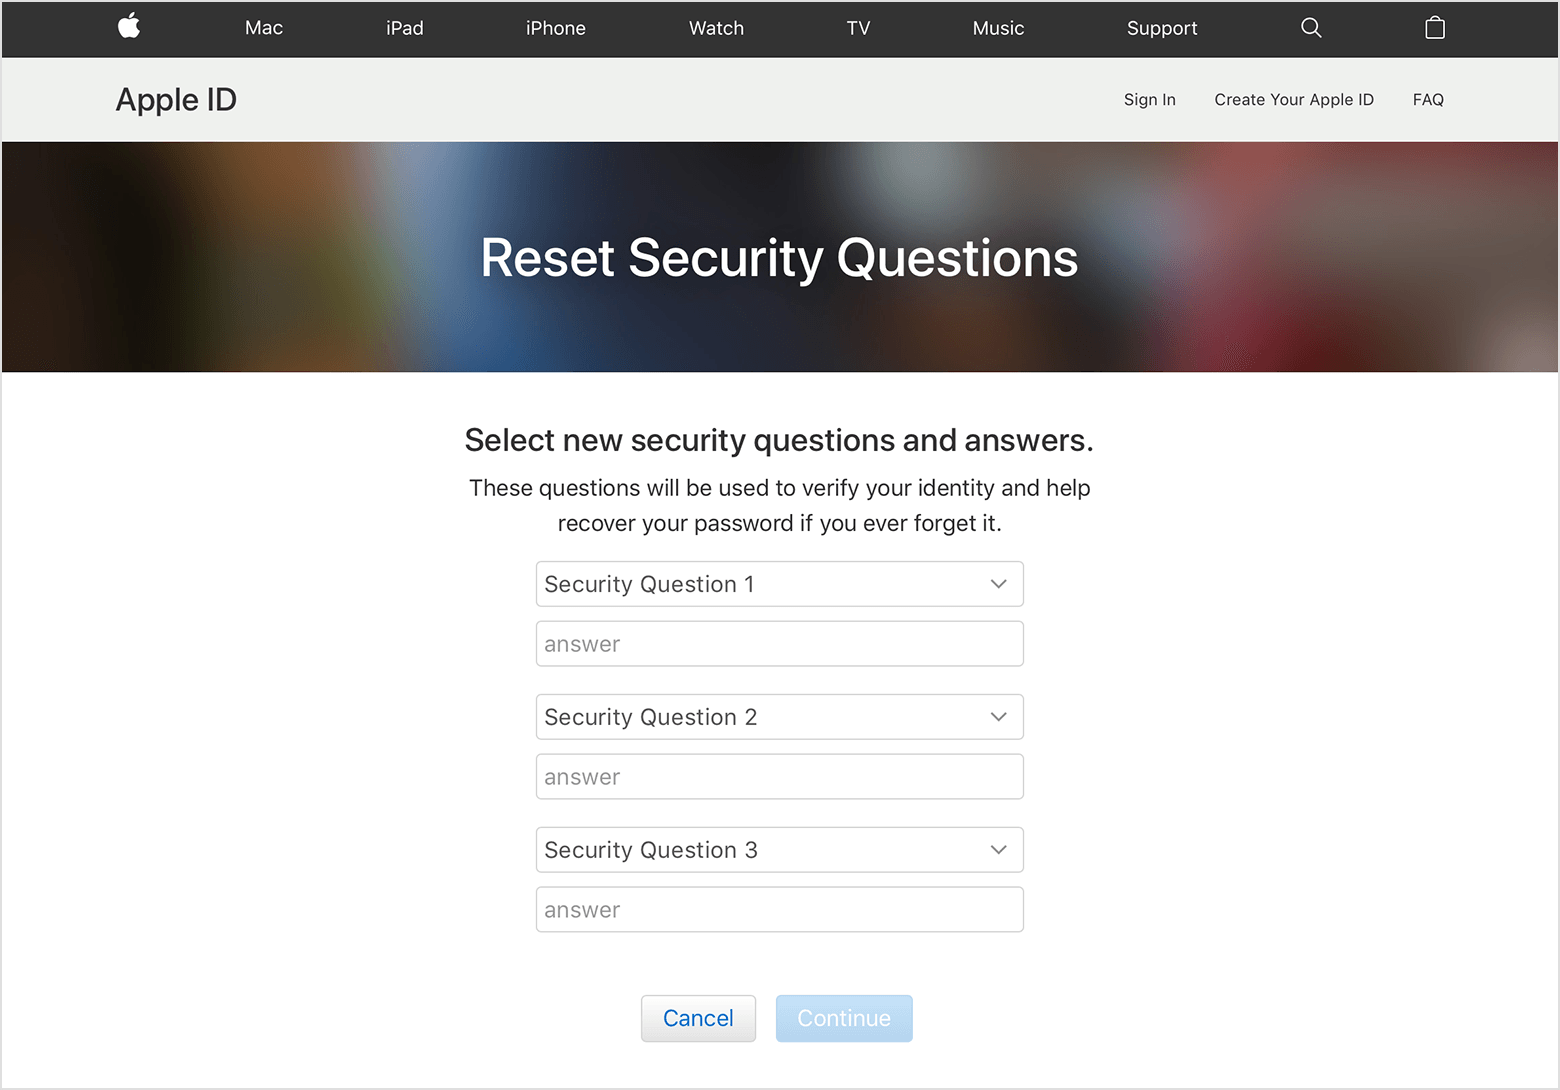 change or edit Apple ID security questions and answers